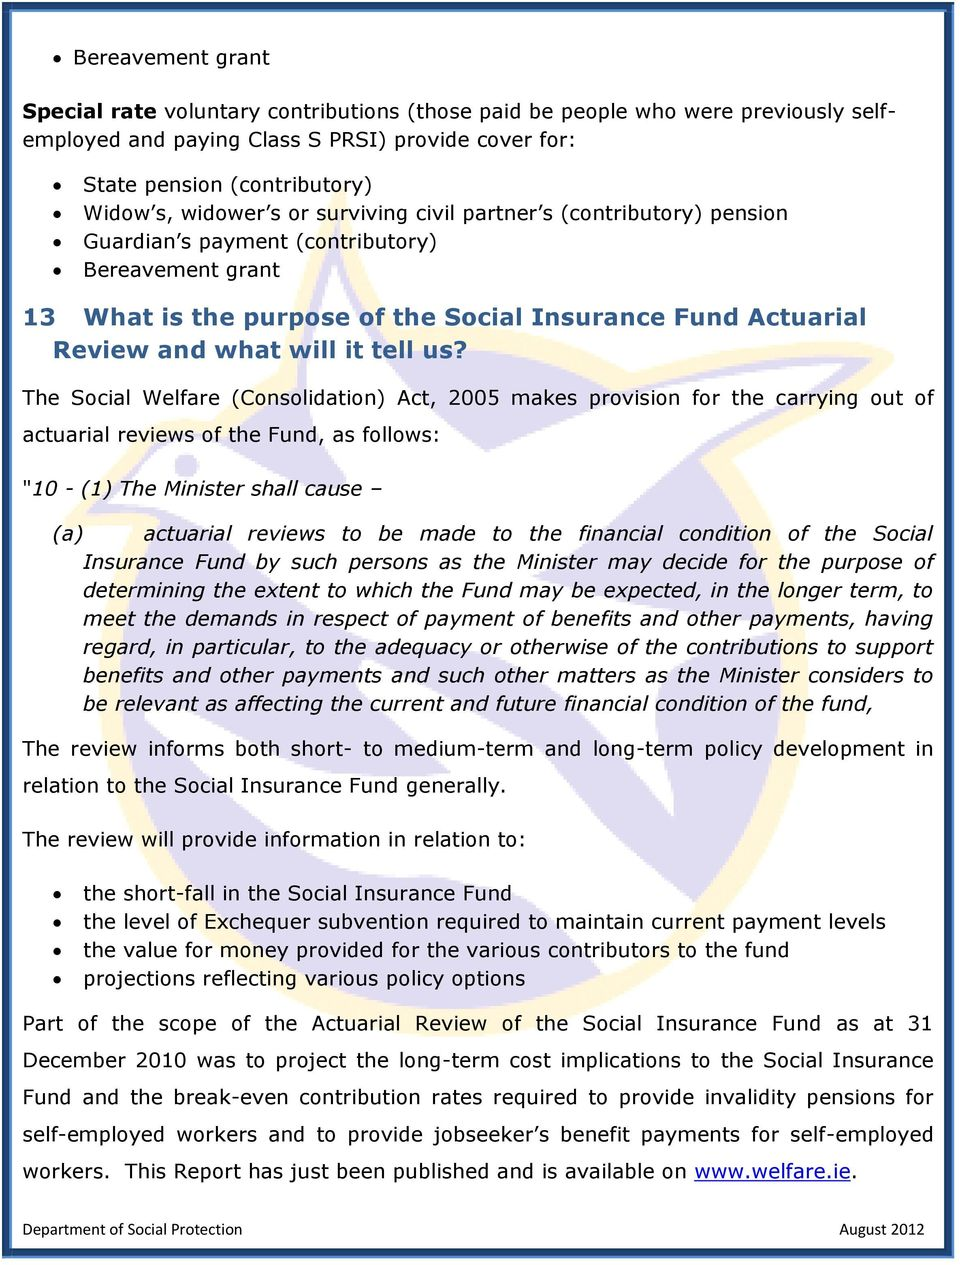 "The Social Welfare (Consolidation) Act, 2005 makes provision for the carrying out of actuarial reviews of the Fund, as follows: ""10 - (1) The Minister shall cause (a) actuarial reviews to be made to"